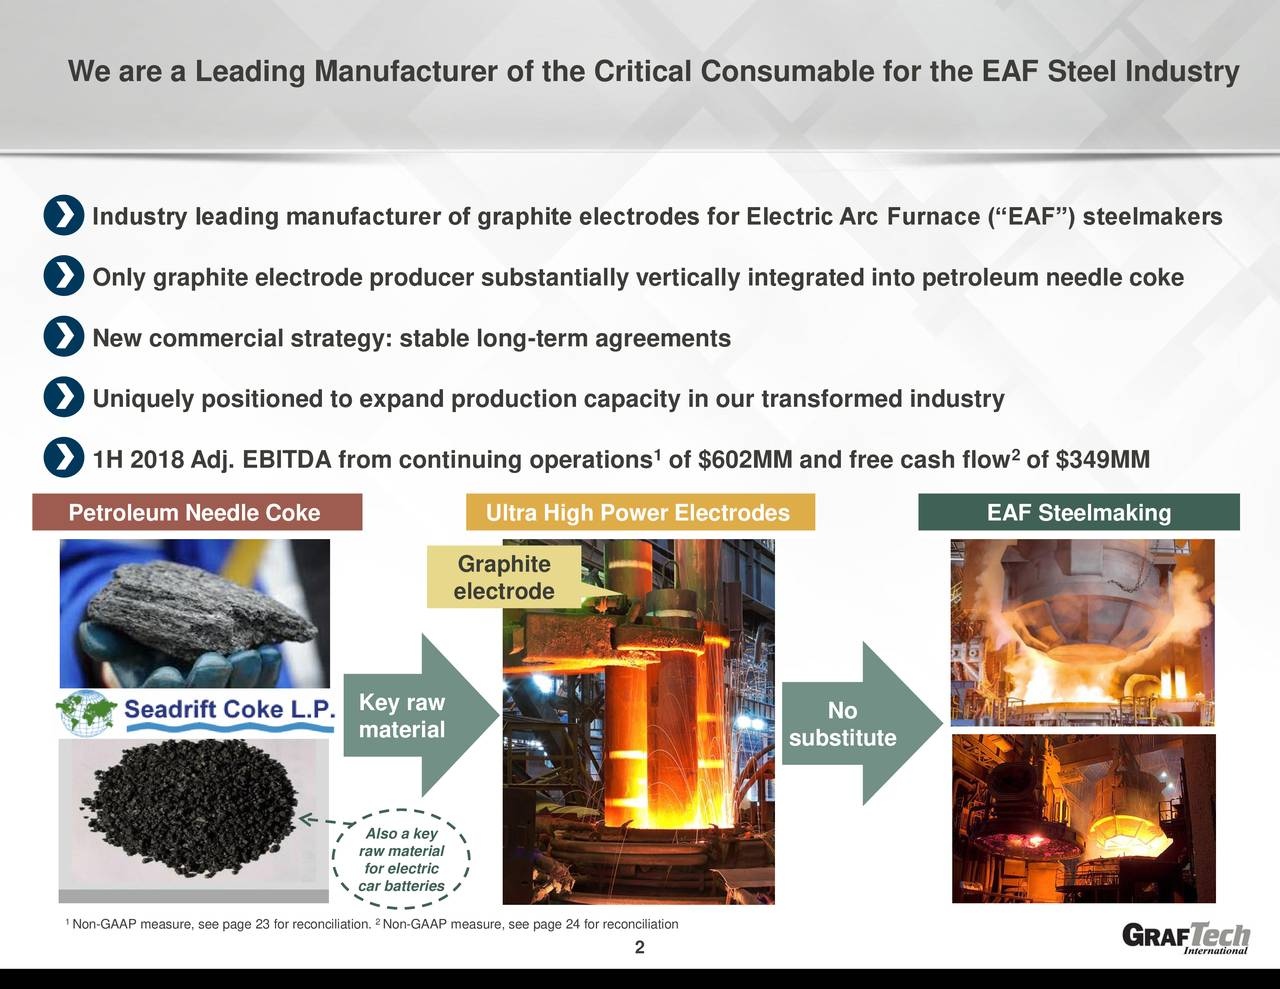 """Industry leading manufacturer of graphite electrodes for Electric Arc Furnace (""""EAF"""") steelmakers Only graphite electrode producer substantially vertically integrated into petroleum needle coke New commercial strategy: stable long-term agreements Uniquely positioned to expand production capacity in our transformed industry 1 2 1H 2018 Adj. EBITDA from continuing operations of $602MM and free cash flow of $349MM Petroleum Needle Coke Ultra High Power Electrodes EAF Steelmaking Graphite electrode Key raw No material substitute Also a key raw material for electric car batteries 1Non-GAAP measure, see page 23 for reconciliation. Non-GAAP measure, see page 24 for reconciliation 2"""